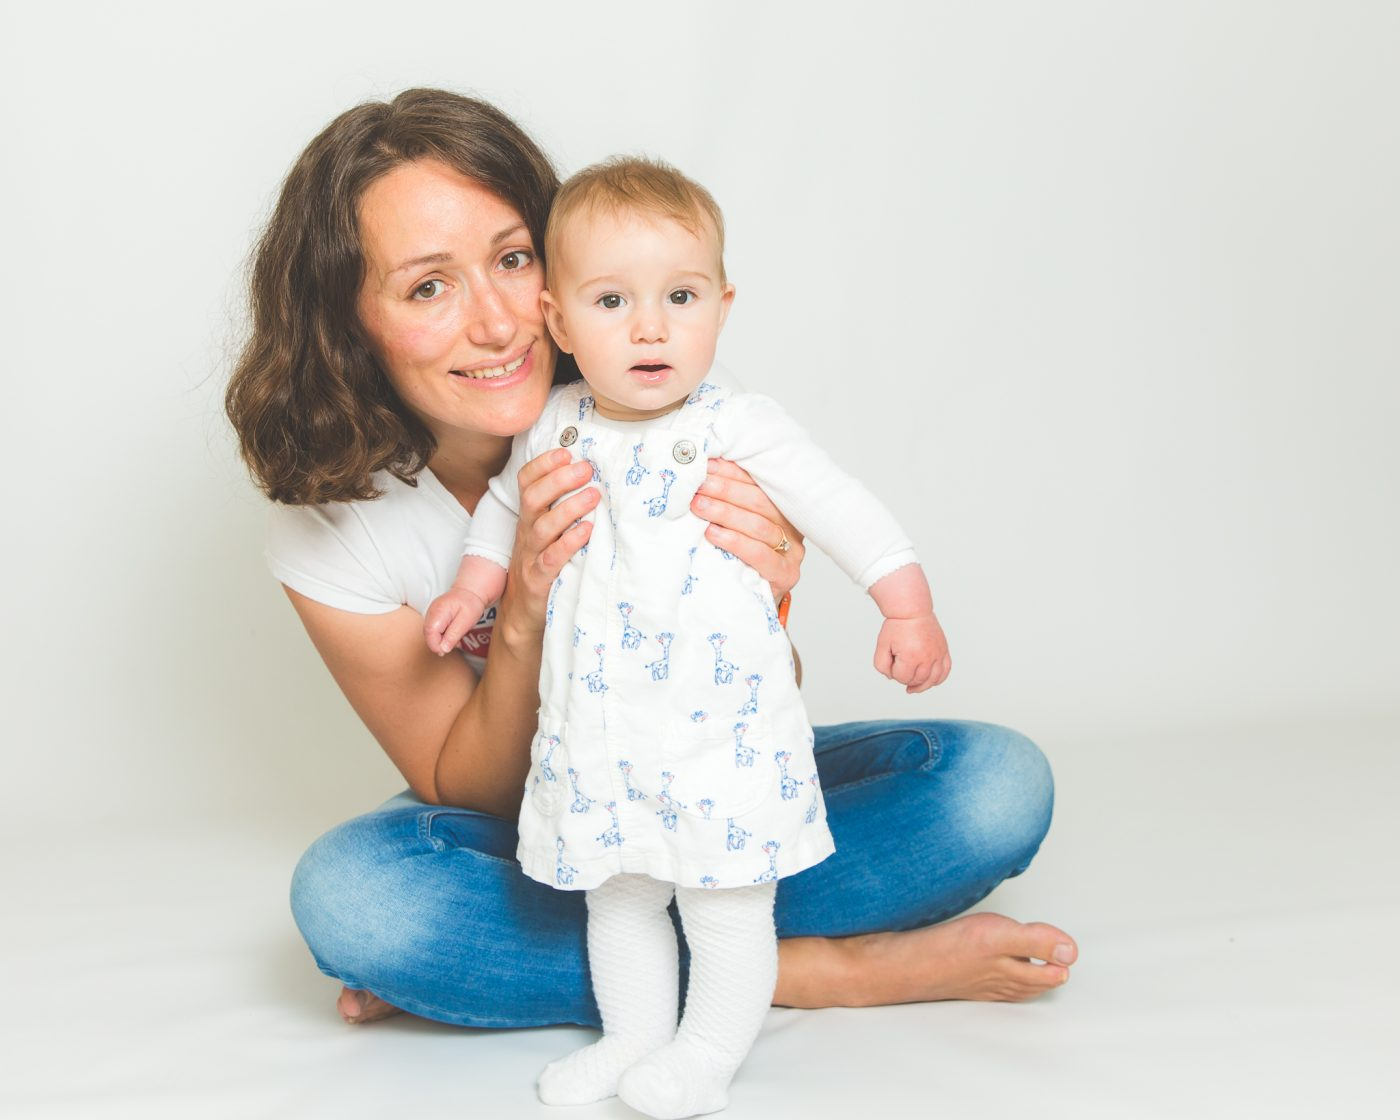 Family photographer harrogate